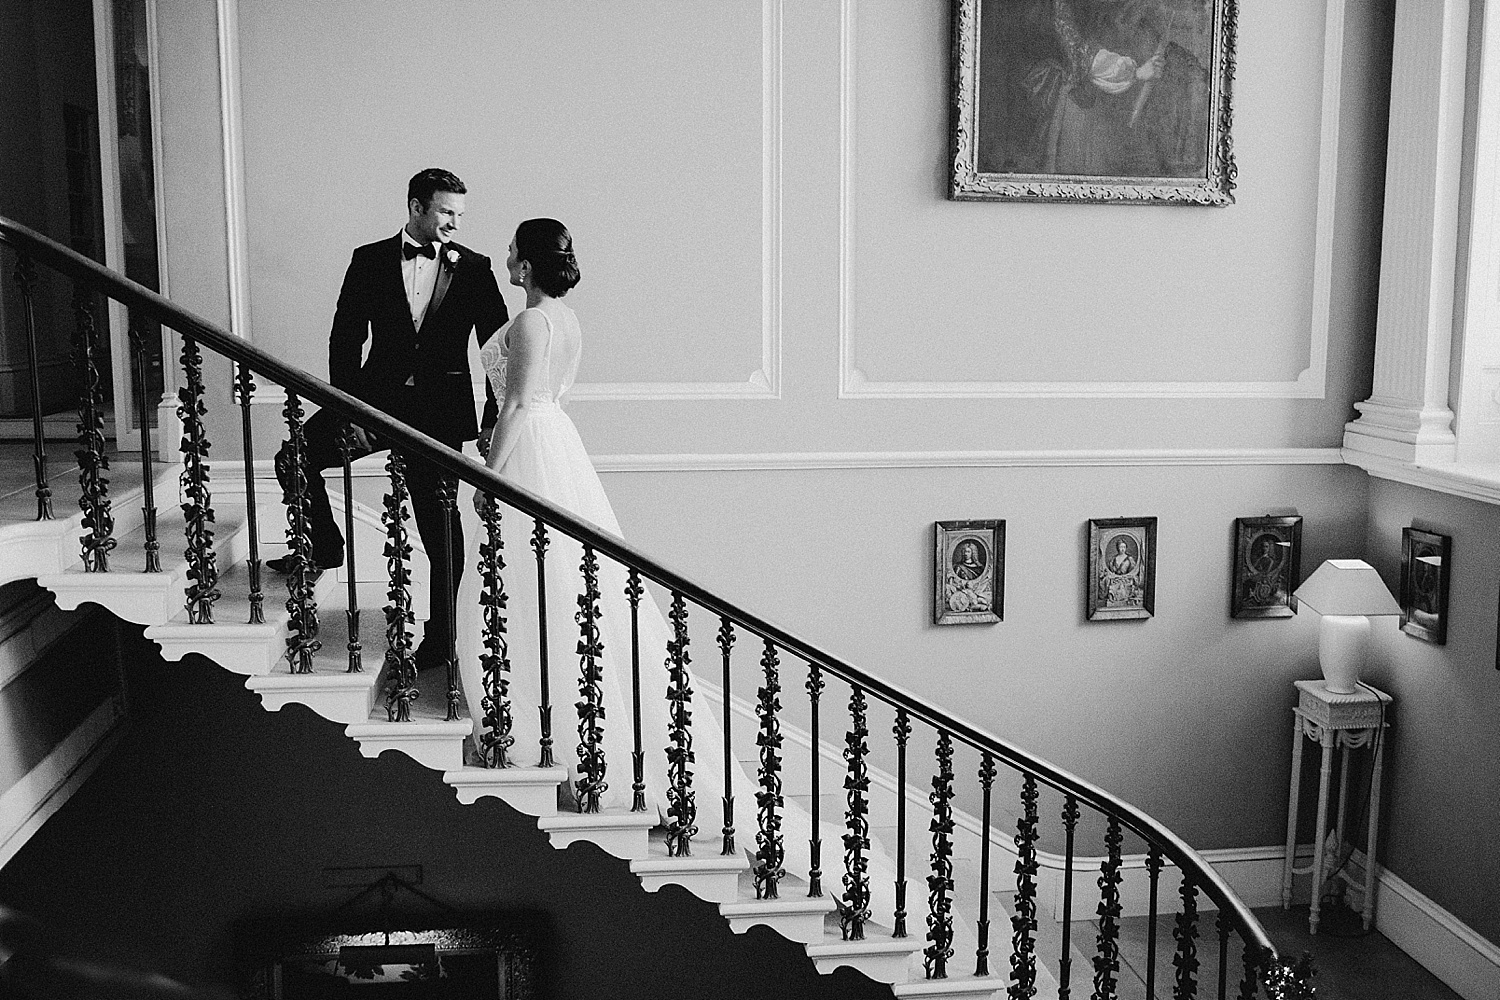 Drenagh wedding couple on staircase